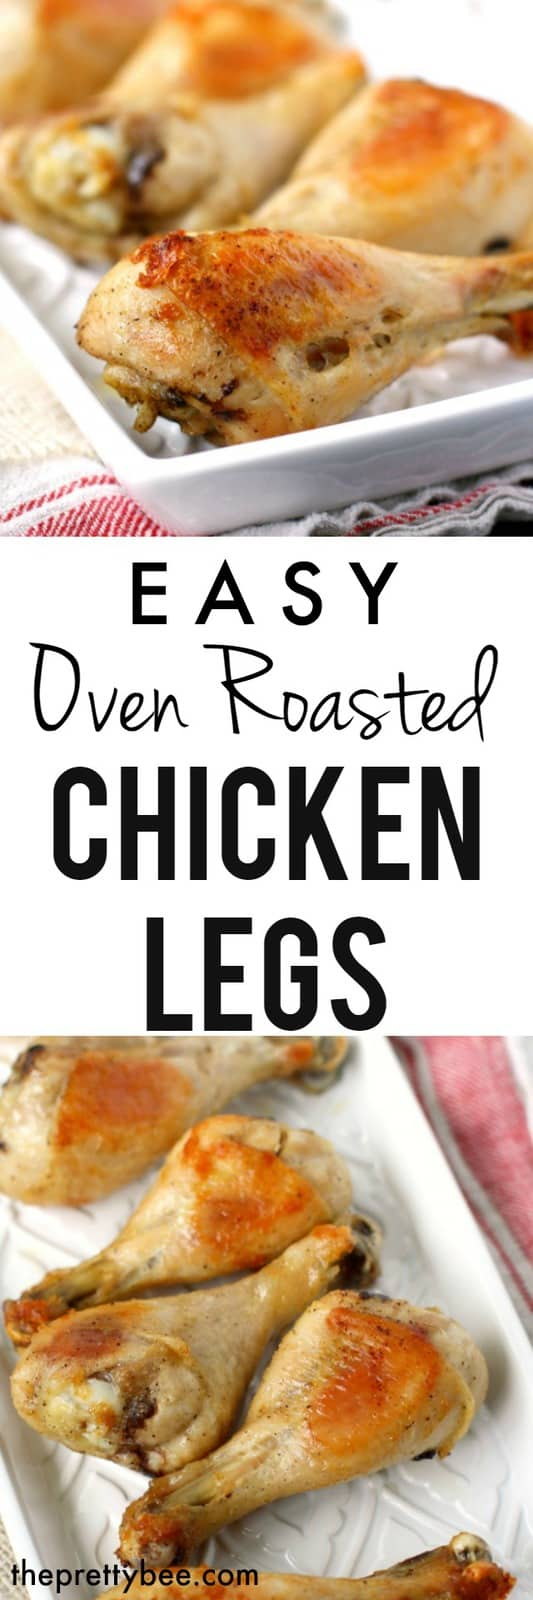 These easy oven roasted chicken legs are tender, juicy, and so flavorful! #glutenfree #dairyfree